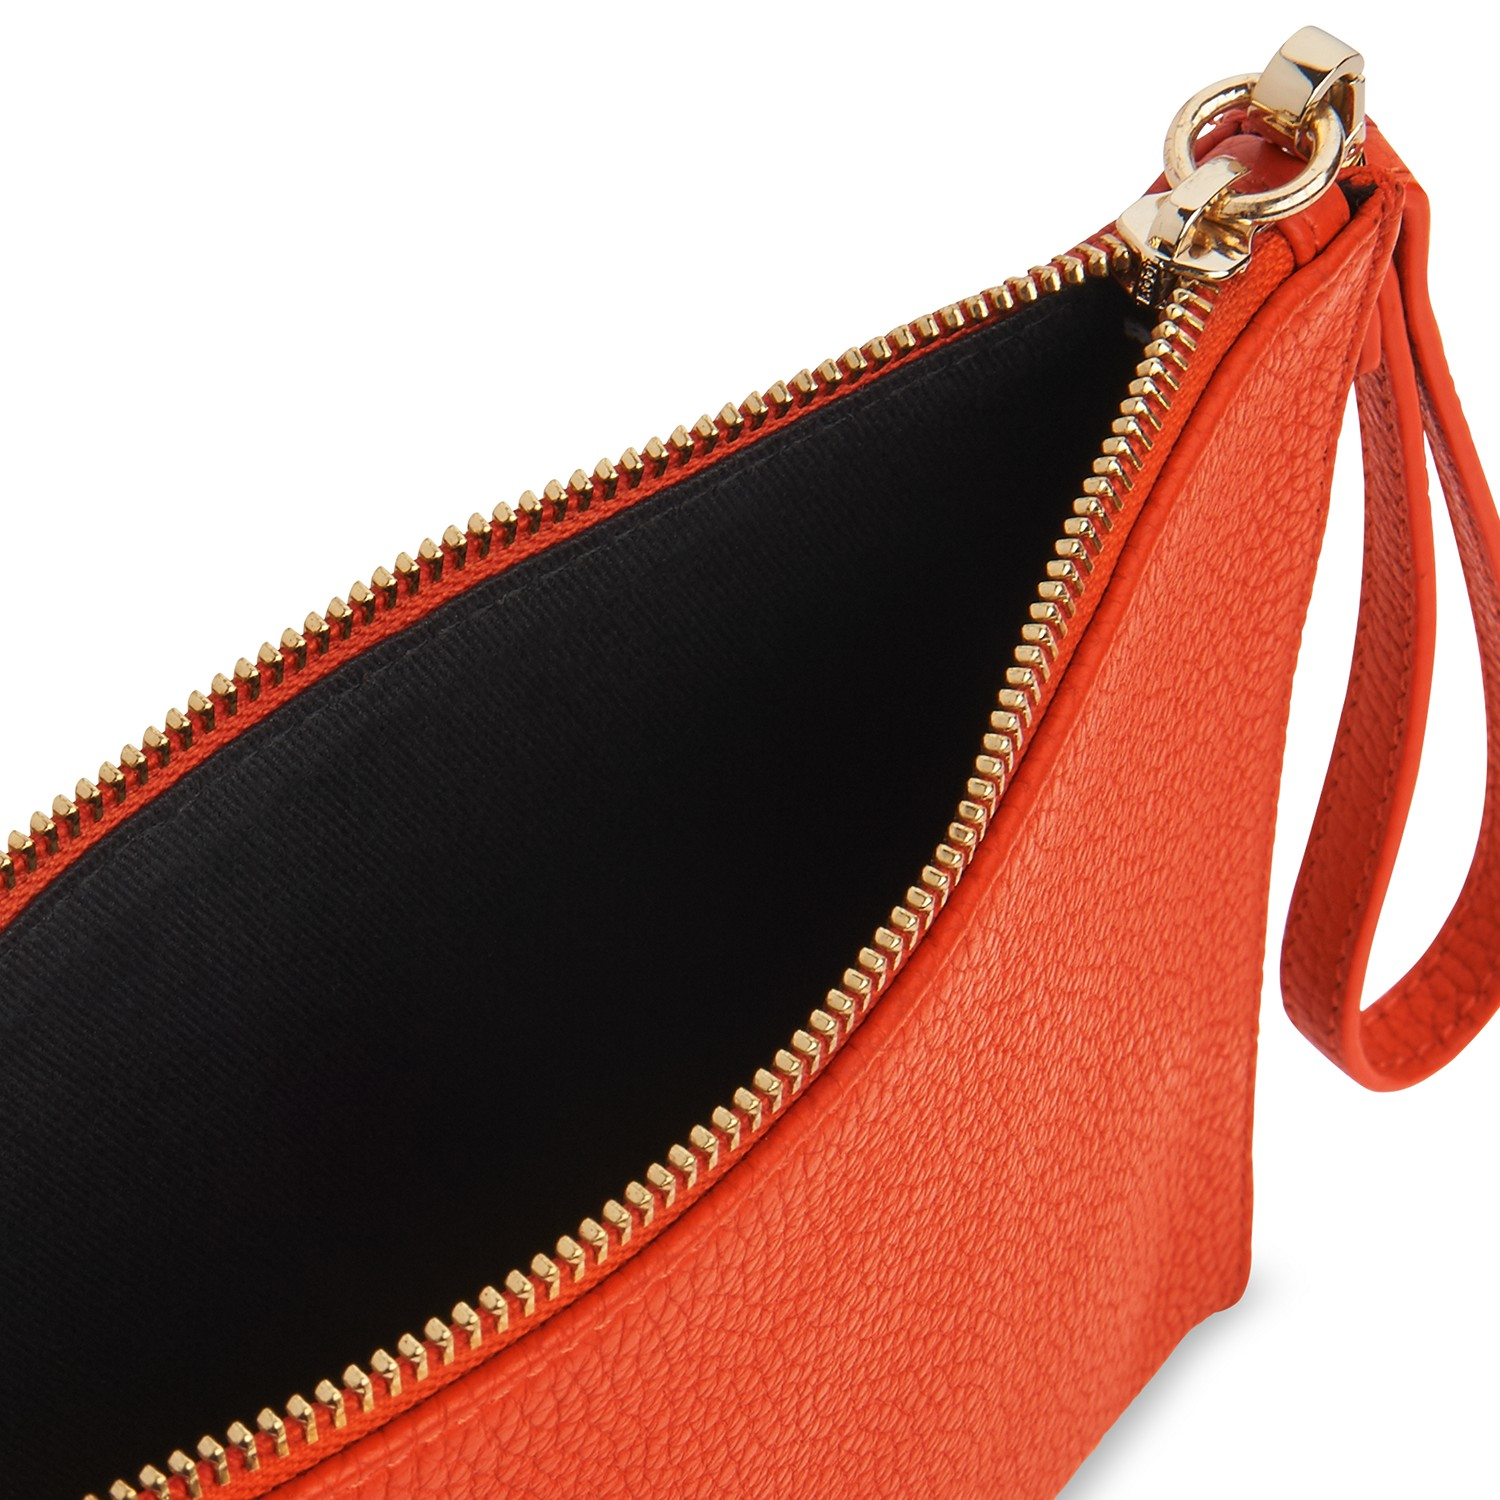 Orange Clutch Bags - Image Wallpaper Database